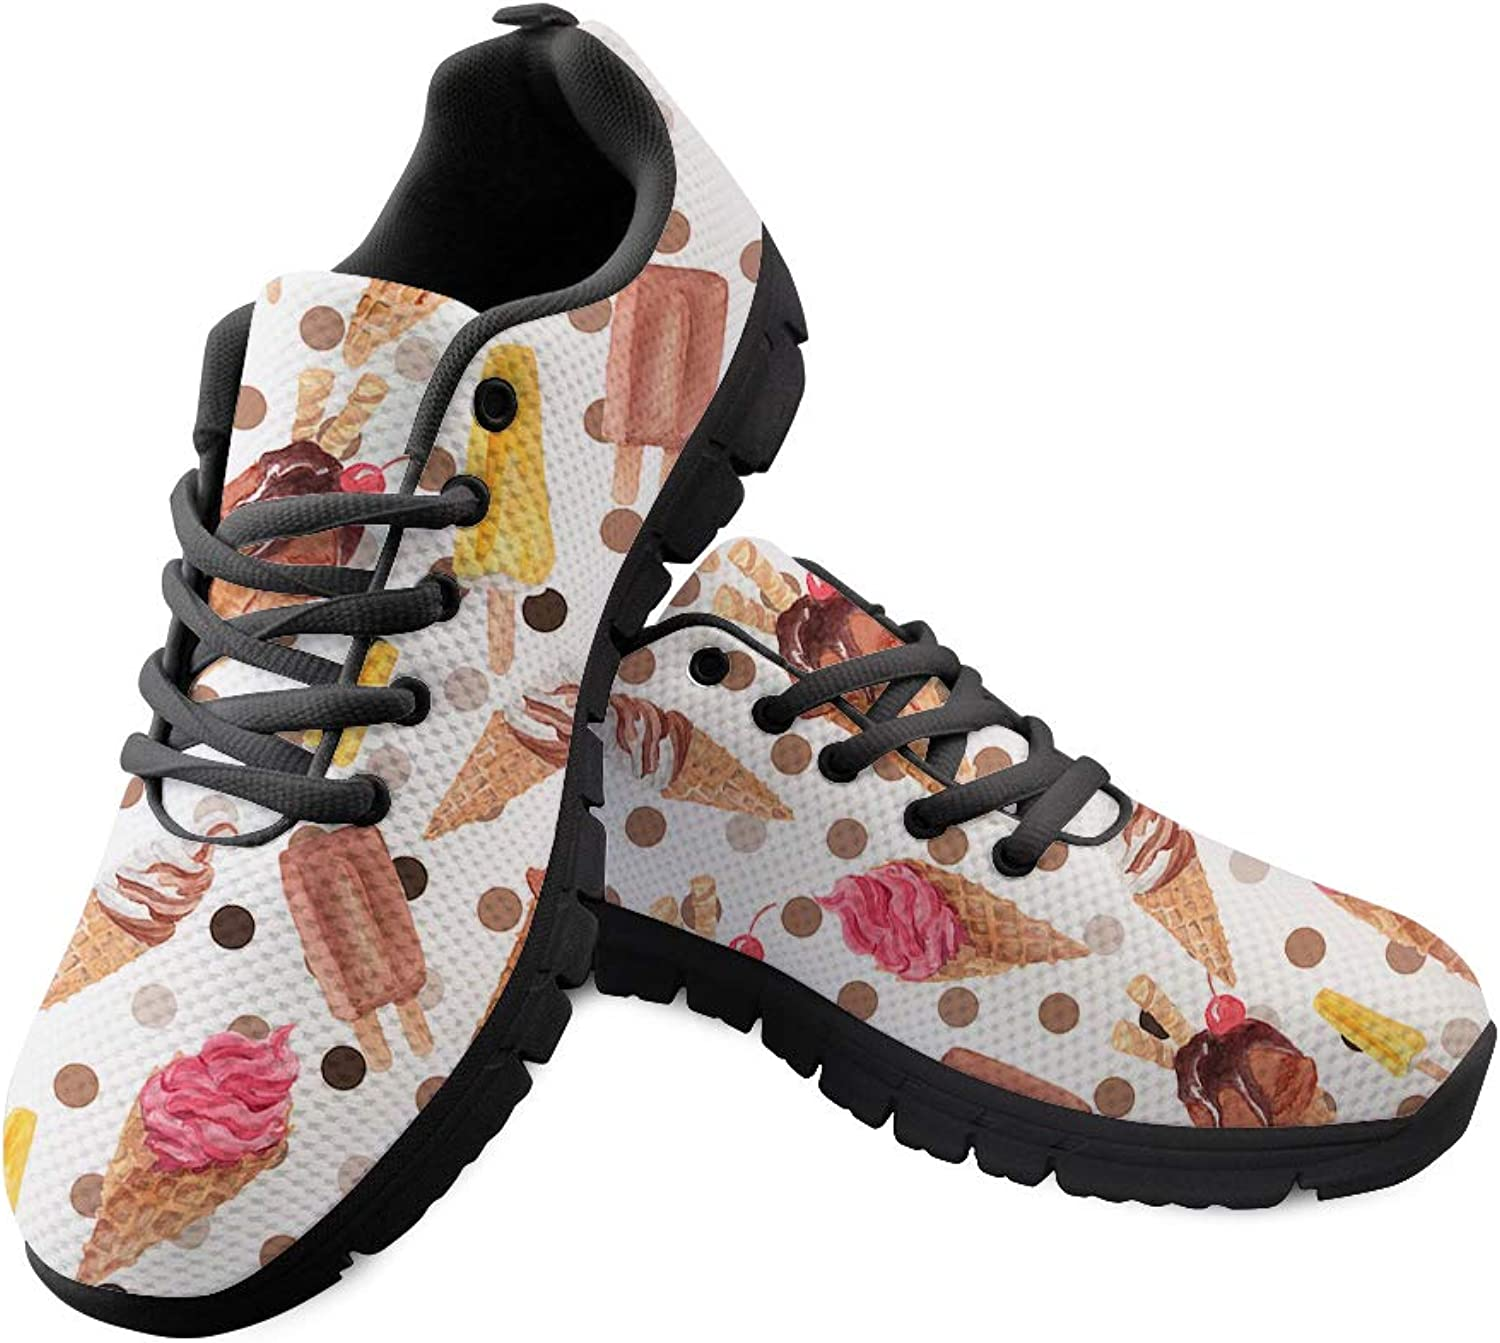 Chaqlin Ice Cream Pattern Fashion Sneakers Women Casual Walking shoes Sports Running Size 38